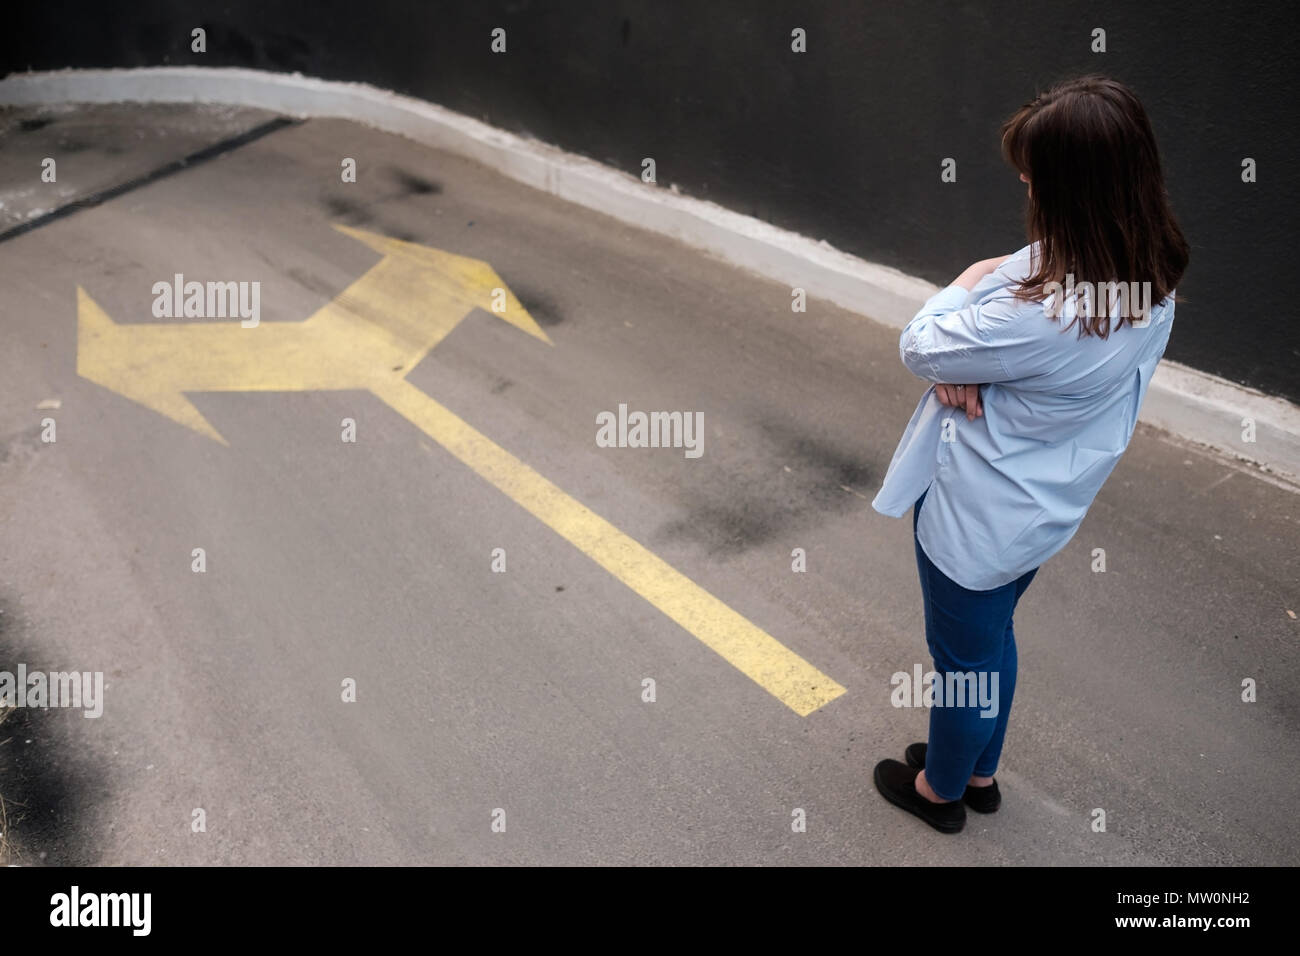 Firl standing near two arrows printed on grunge road, making decision - Stock Image